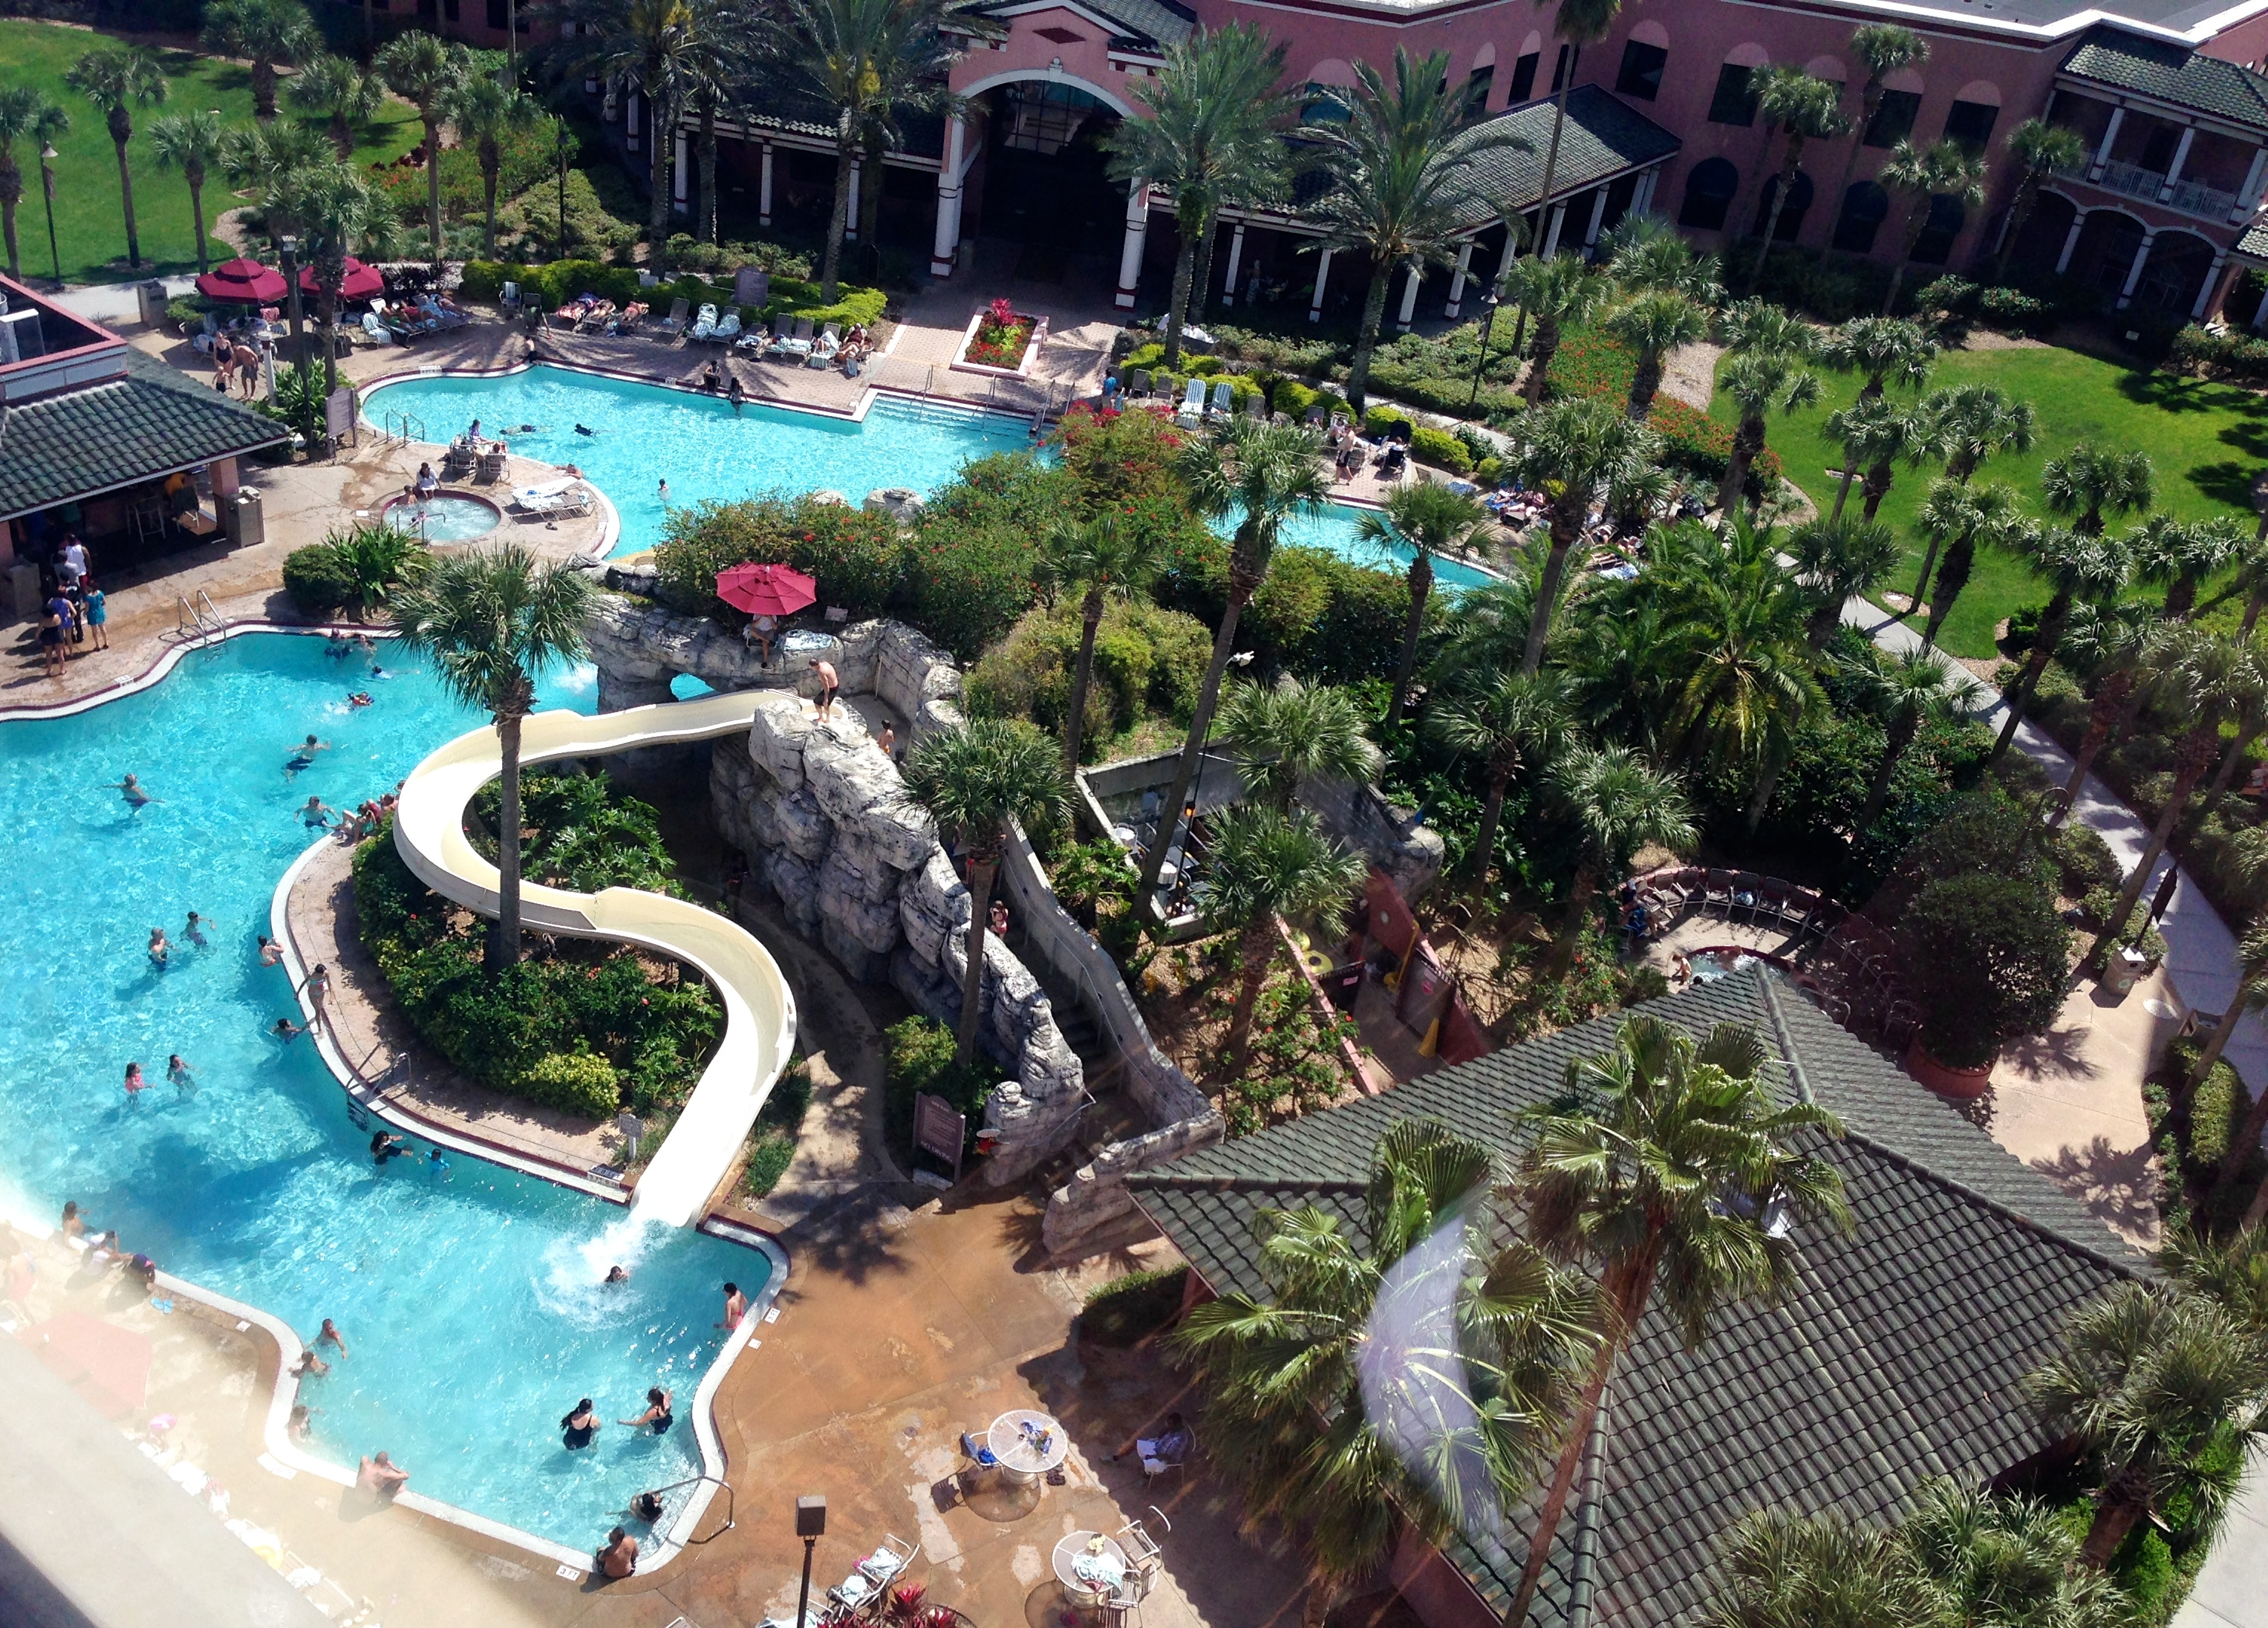 Our Stay at the Caribe Royale in Orlando